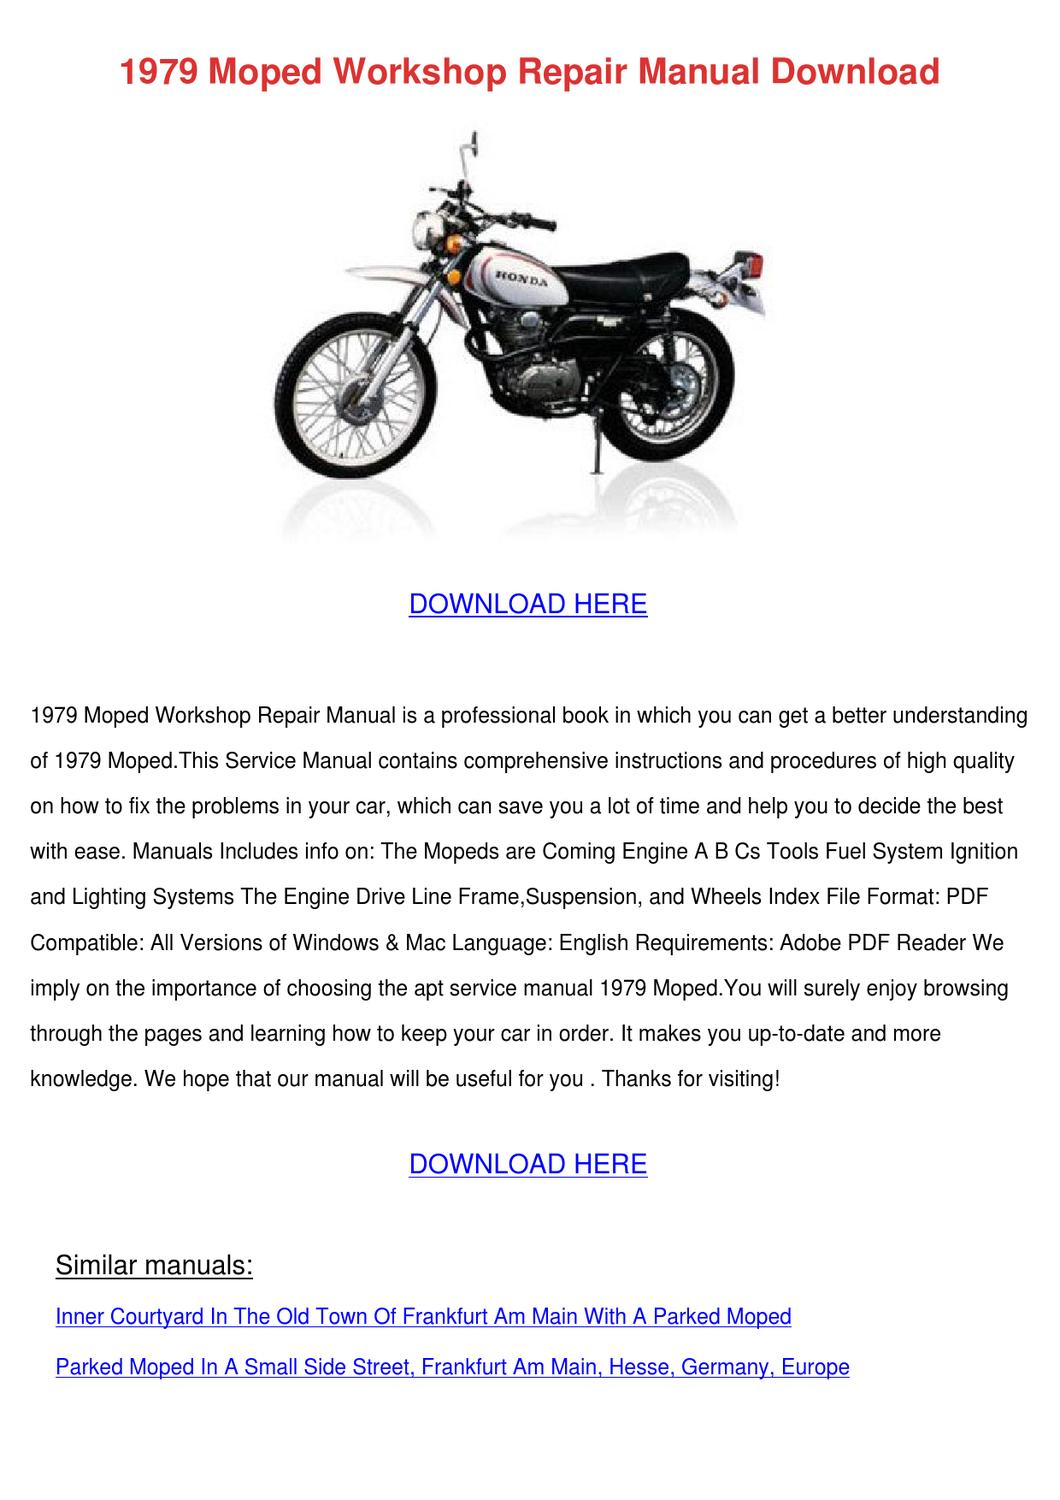 1979 Moped Workshop Repair Manual Download by NellMosher - issuu